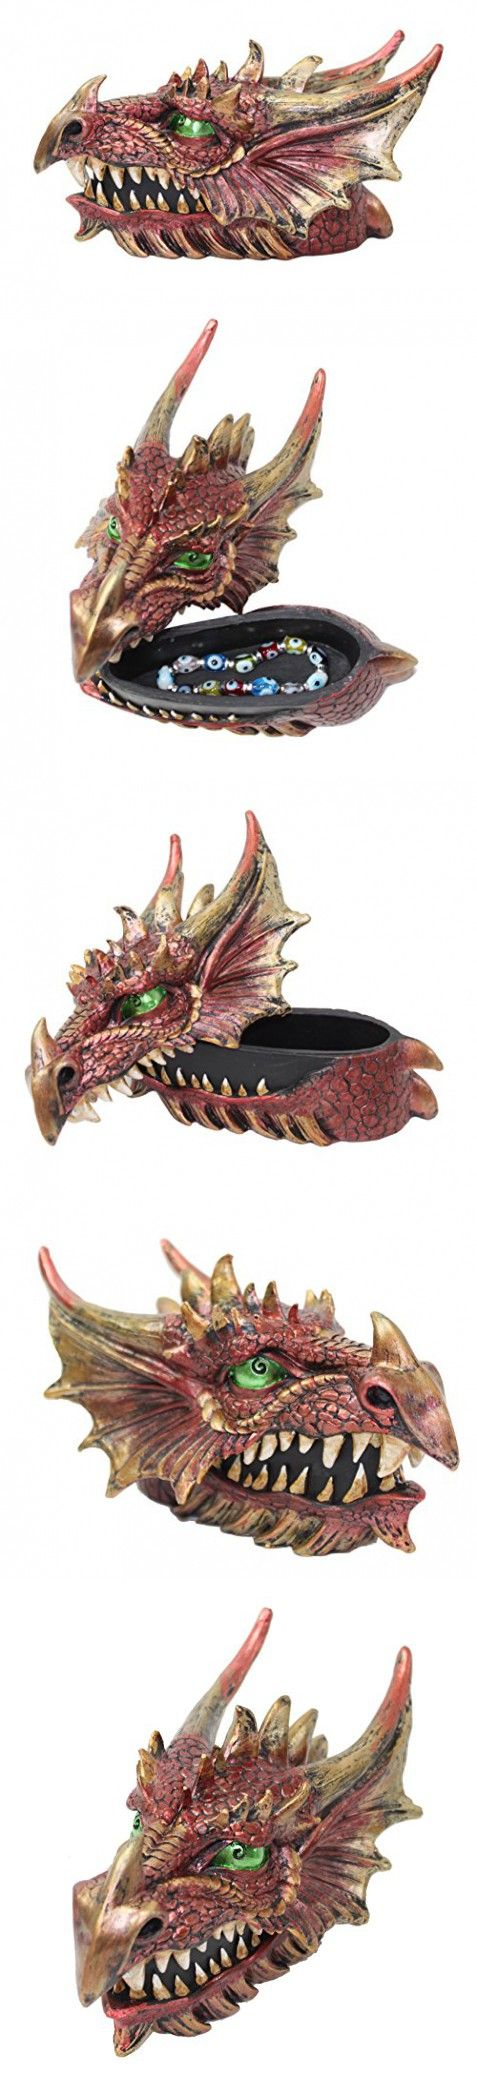 Mythical Red Western Dragon Head Jewelry Trinket Box Organizer Casket Dark Legend Halloween Medieval Party Home Decor Gift